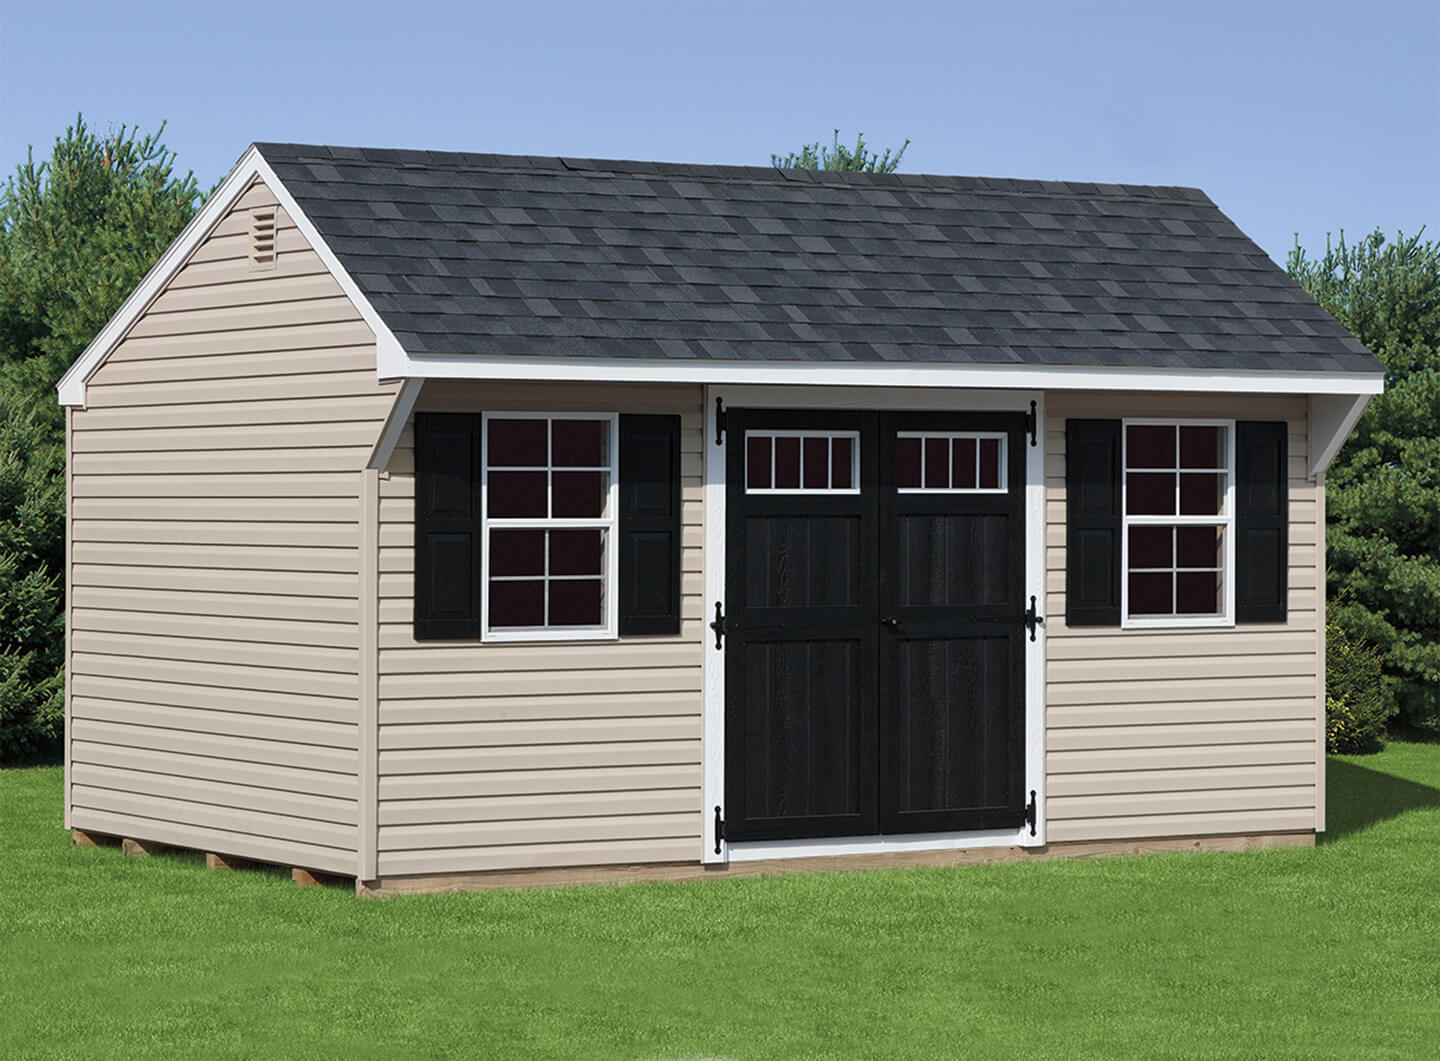 10x14 shed plans 10x14 lean to shed plans door on angled for Quaker barn home designs